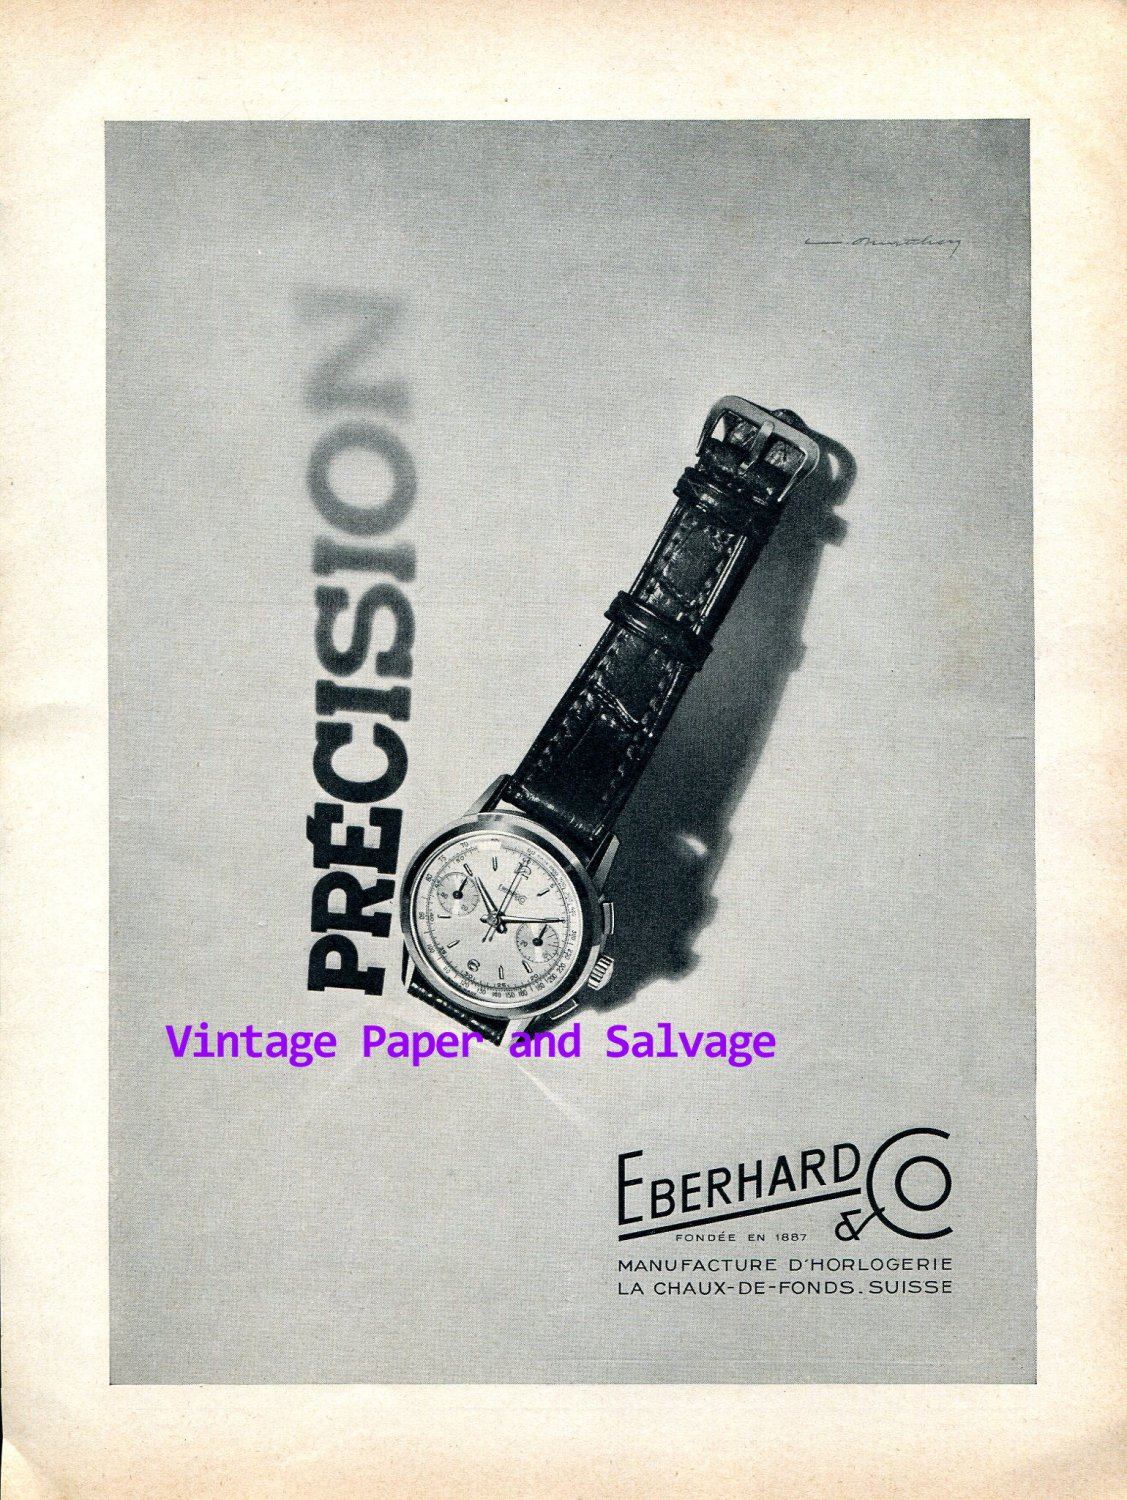 1952 Eberhard & Co Watch Company Switzerland Vintage 1950s Swiss Ad Advert Suisse